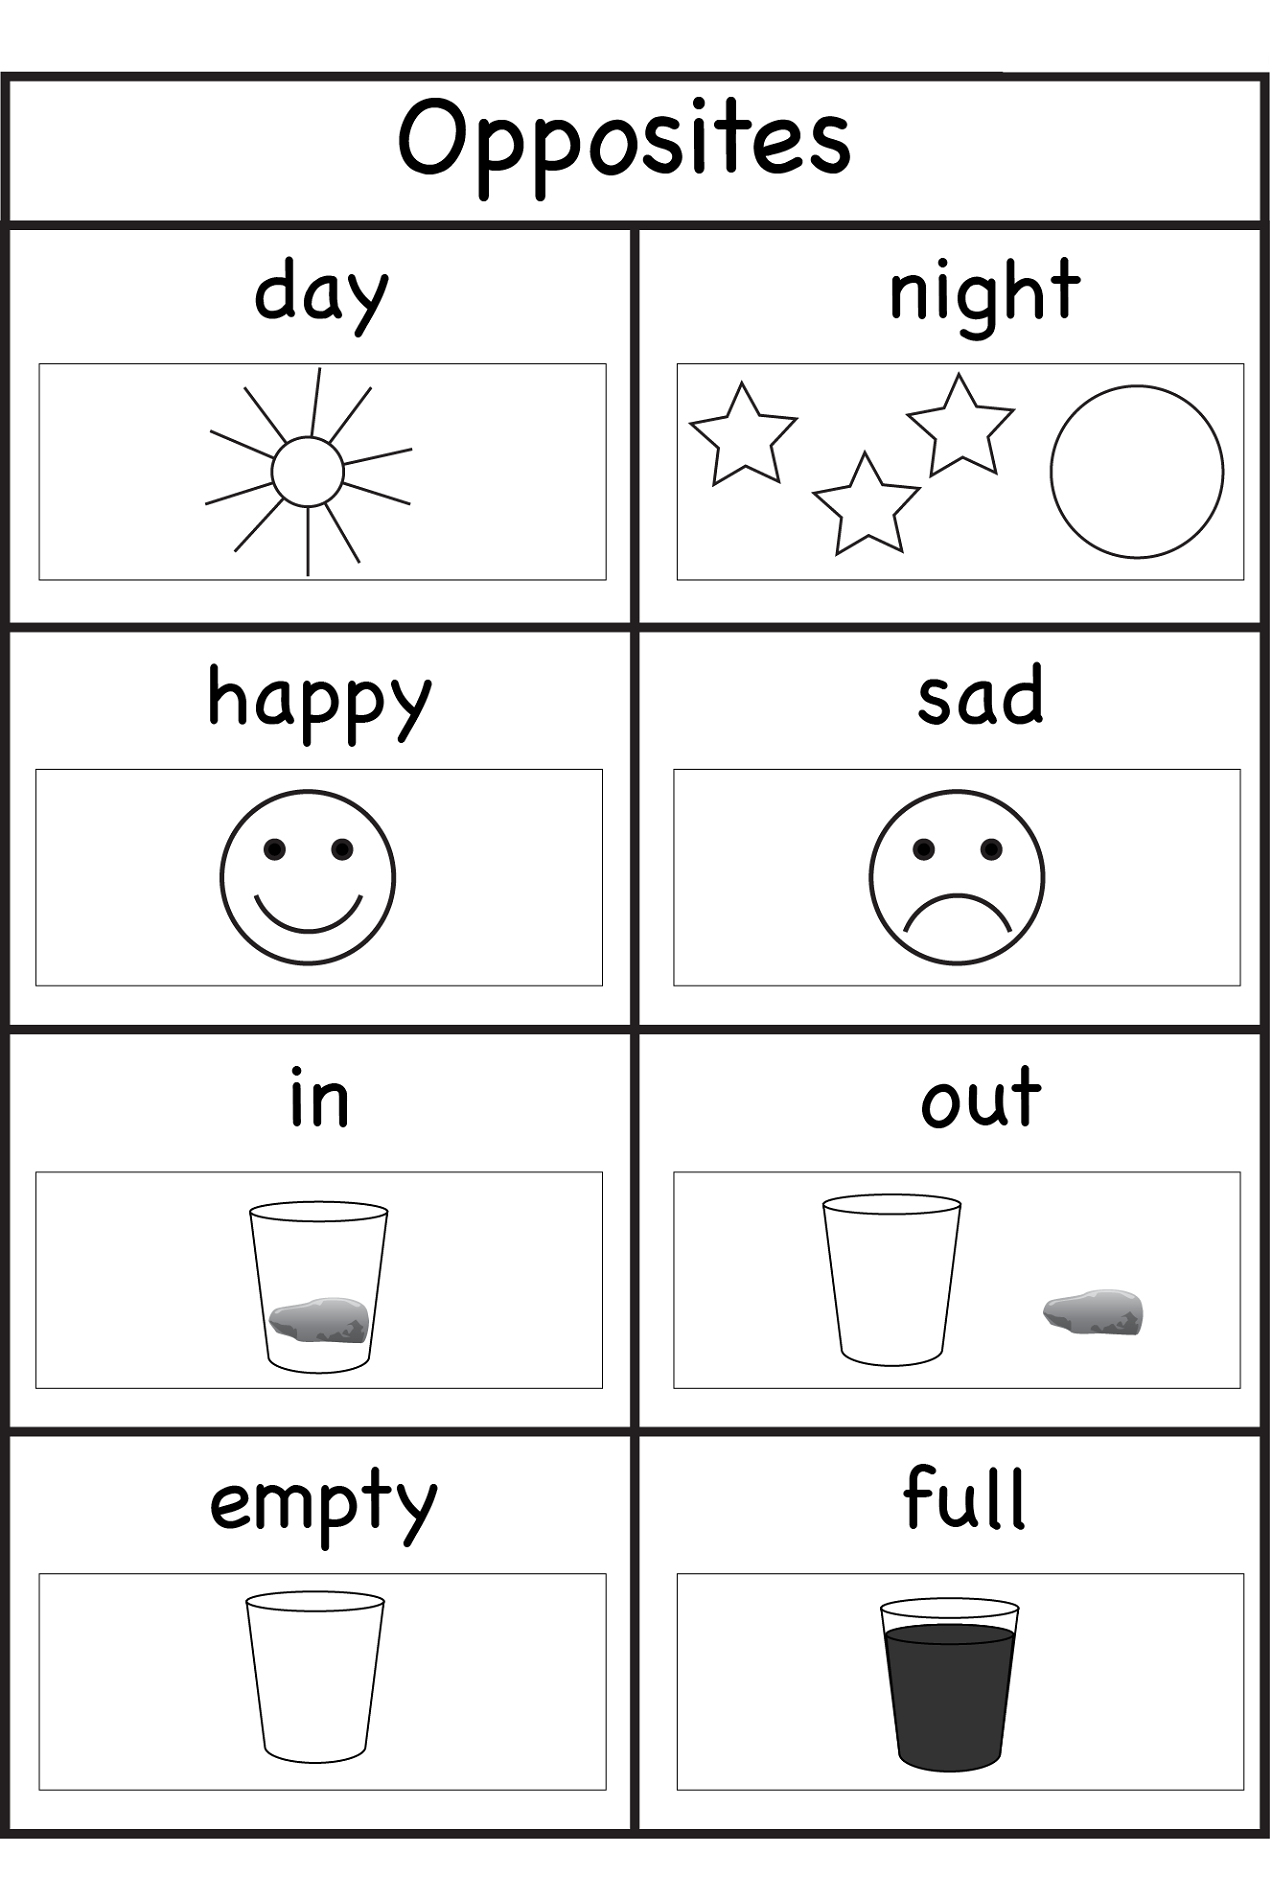 Activity Sheets For 3 Year Olds – With Free Preschool Worksheets Age   Printable Worksheets For 3 Year Olds